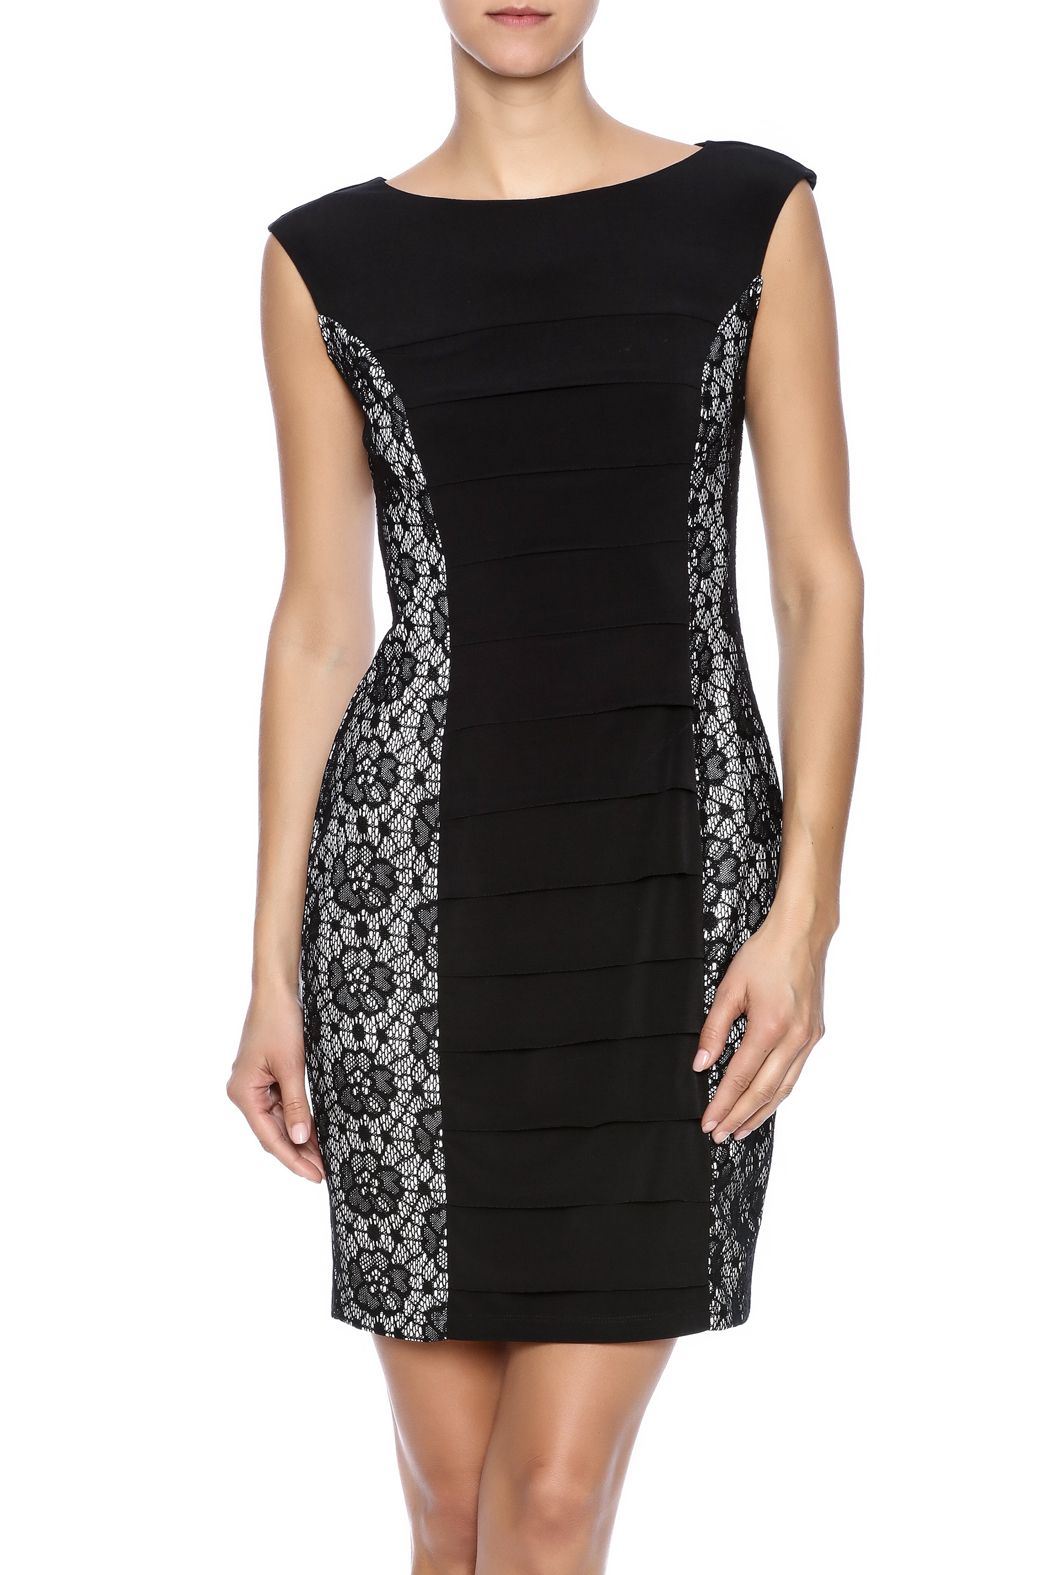 1df88b47ac9 Black sleeveless sheath with overlay lace side panels. Bodycon Dress by  Enfocus Studio. Clothing - Dresses - LBD Kentucky